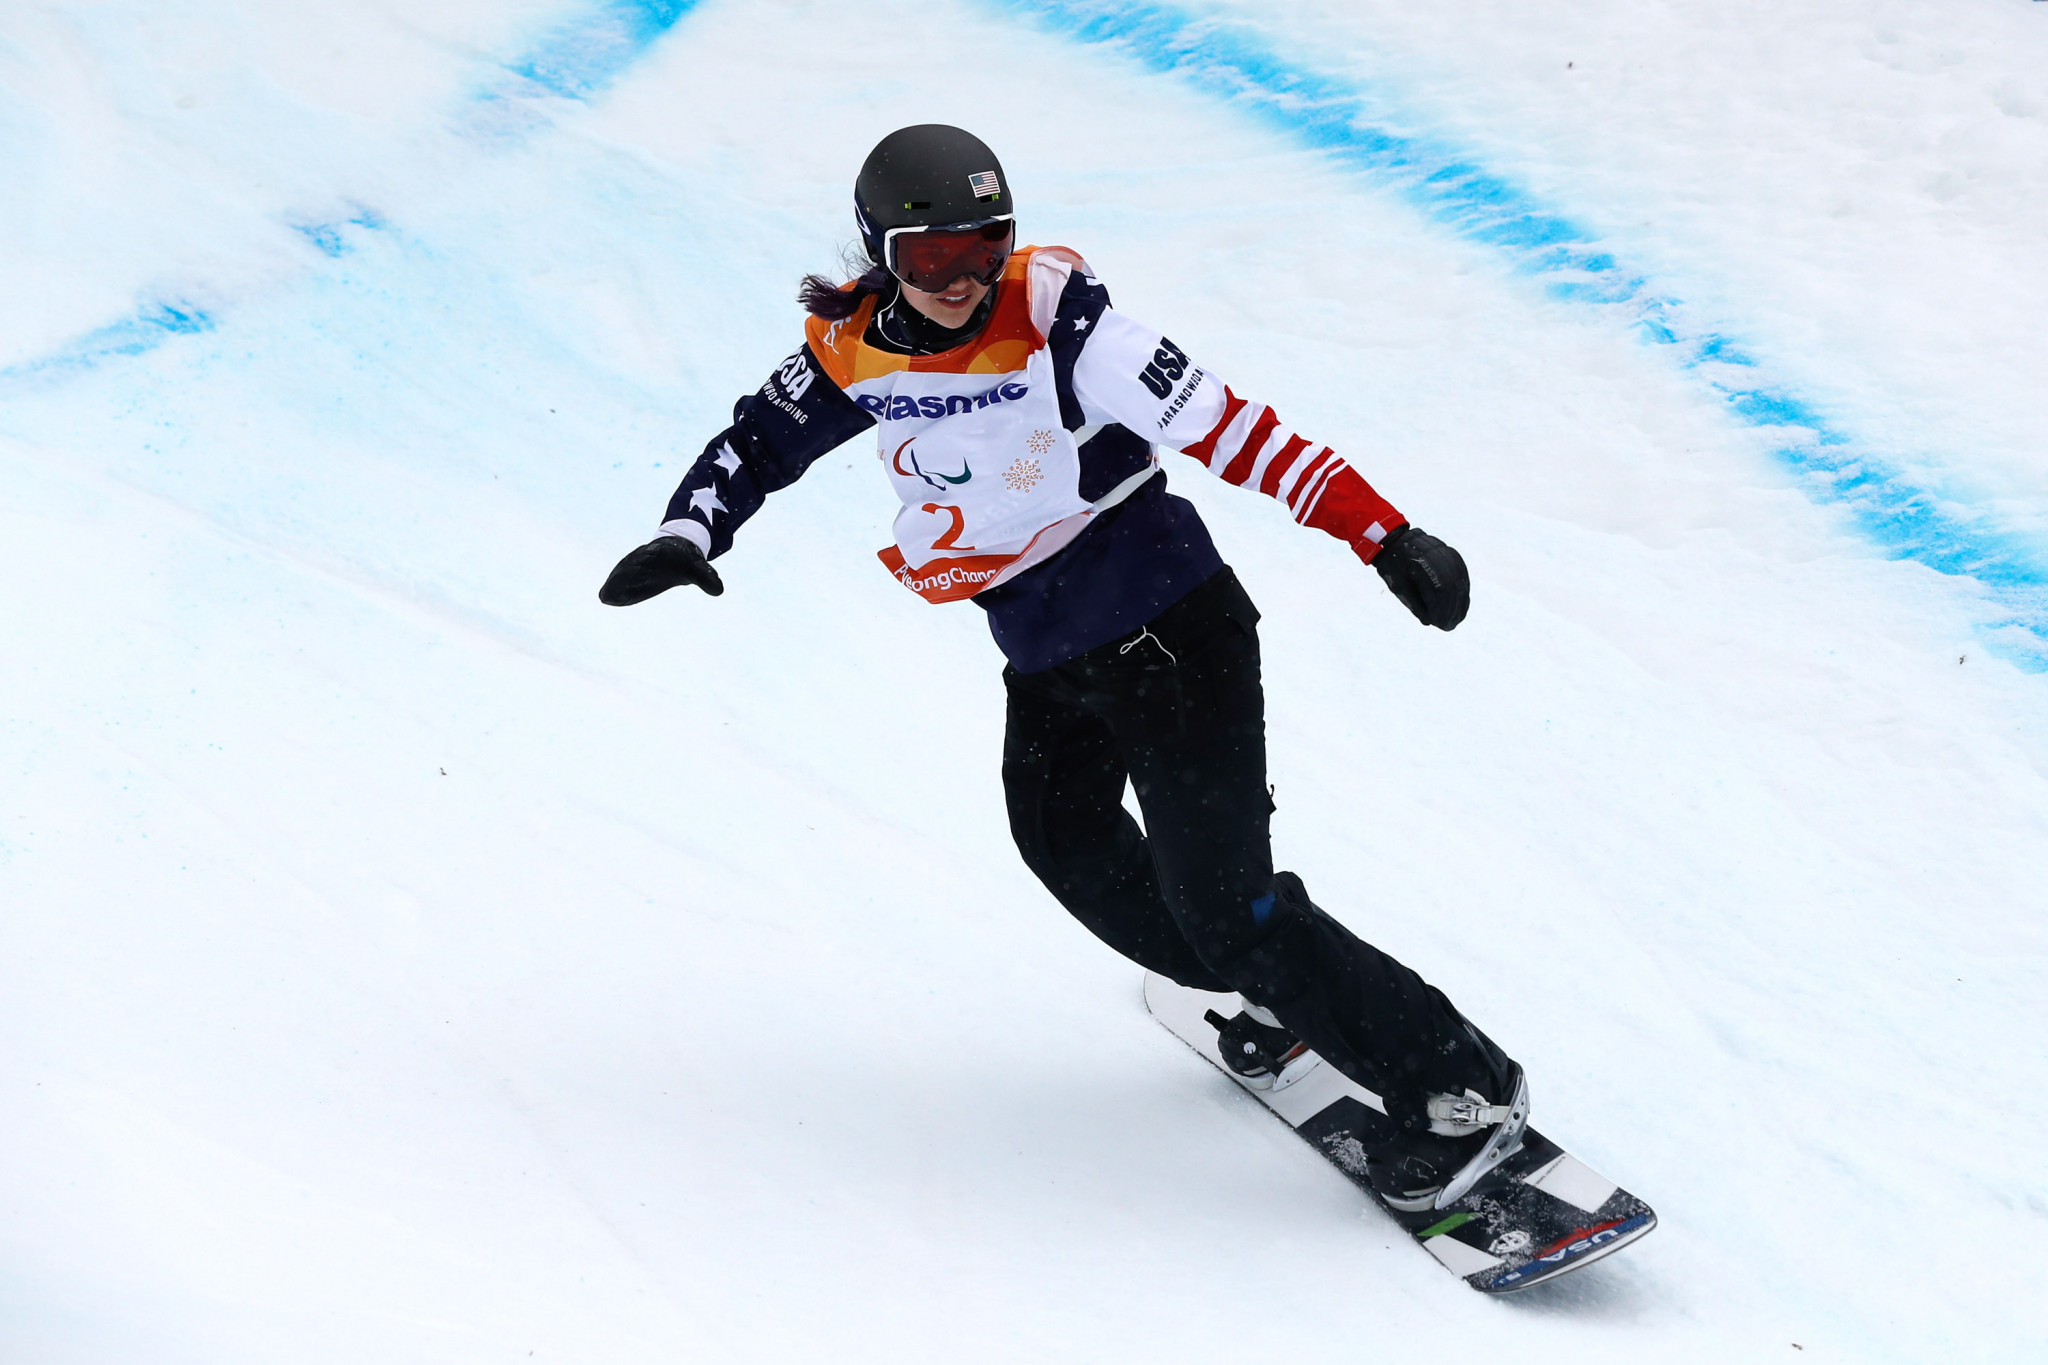 US Paralympics announce three gold medallists in snowboarding team